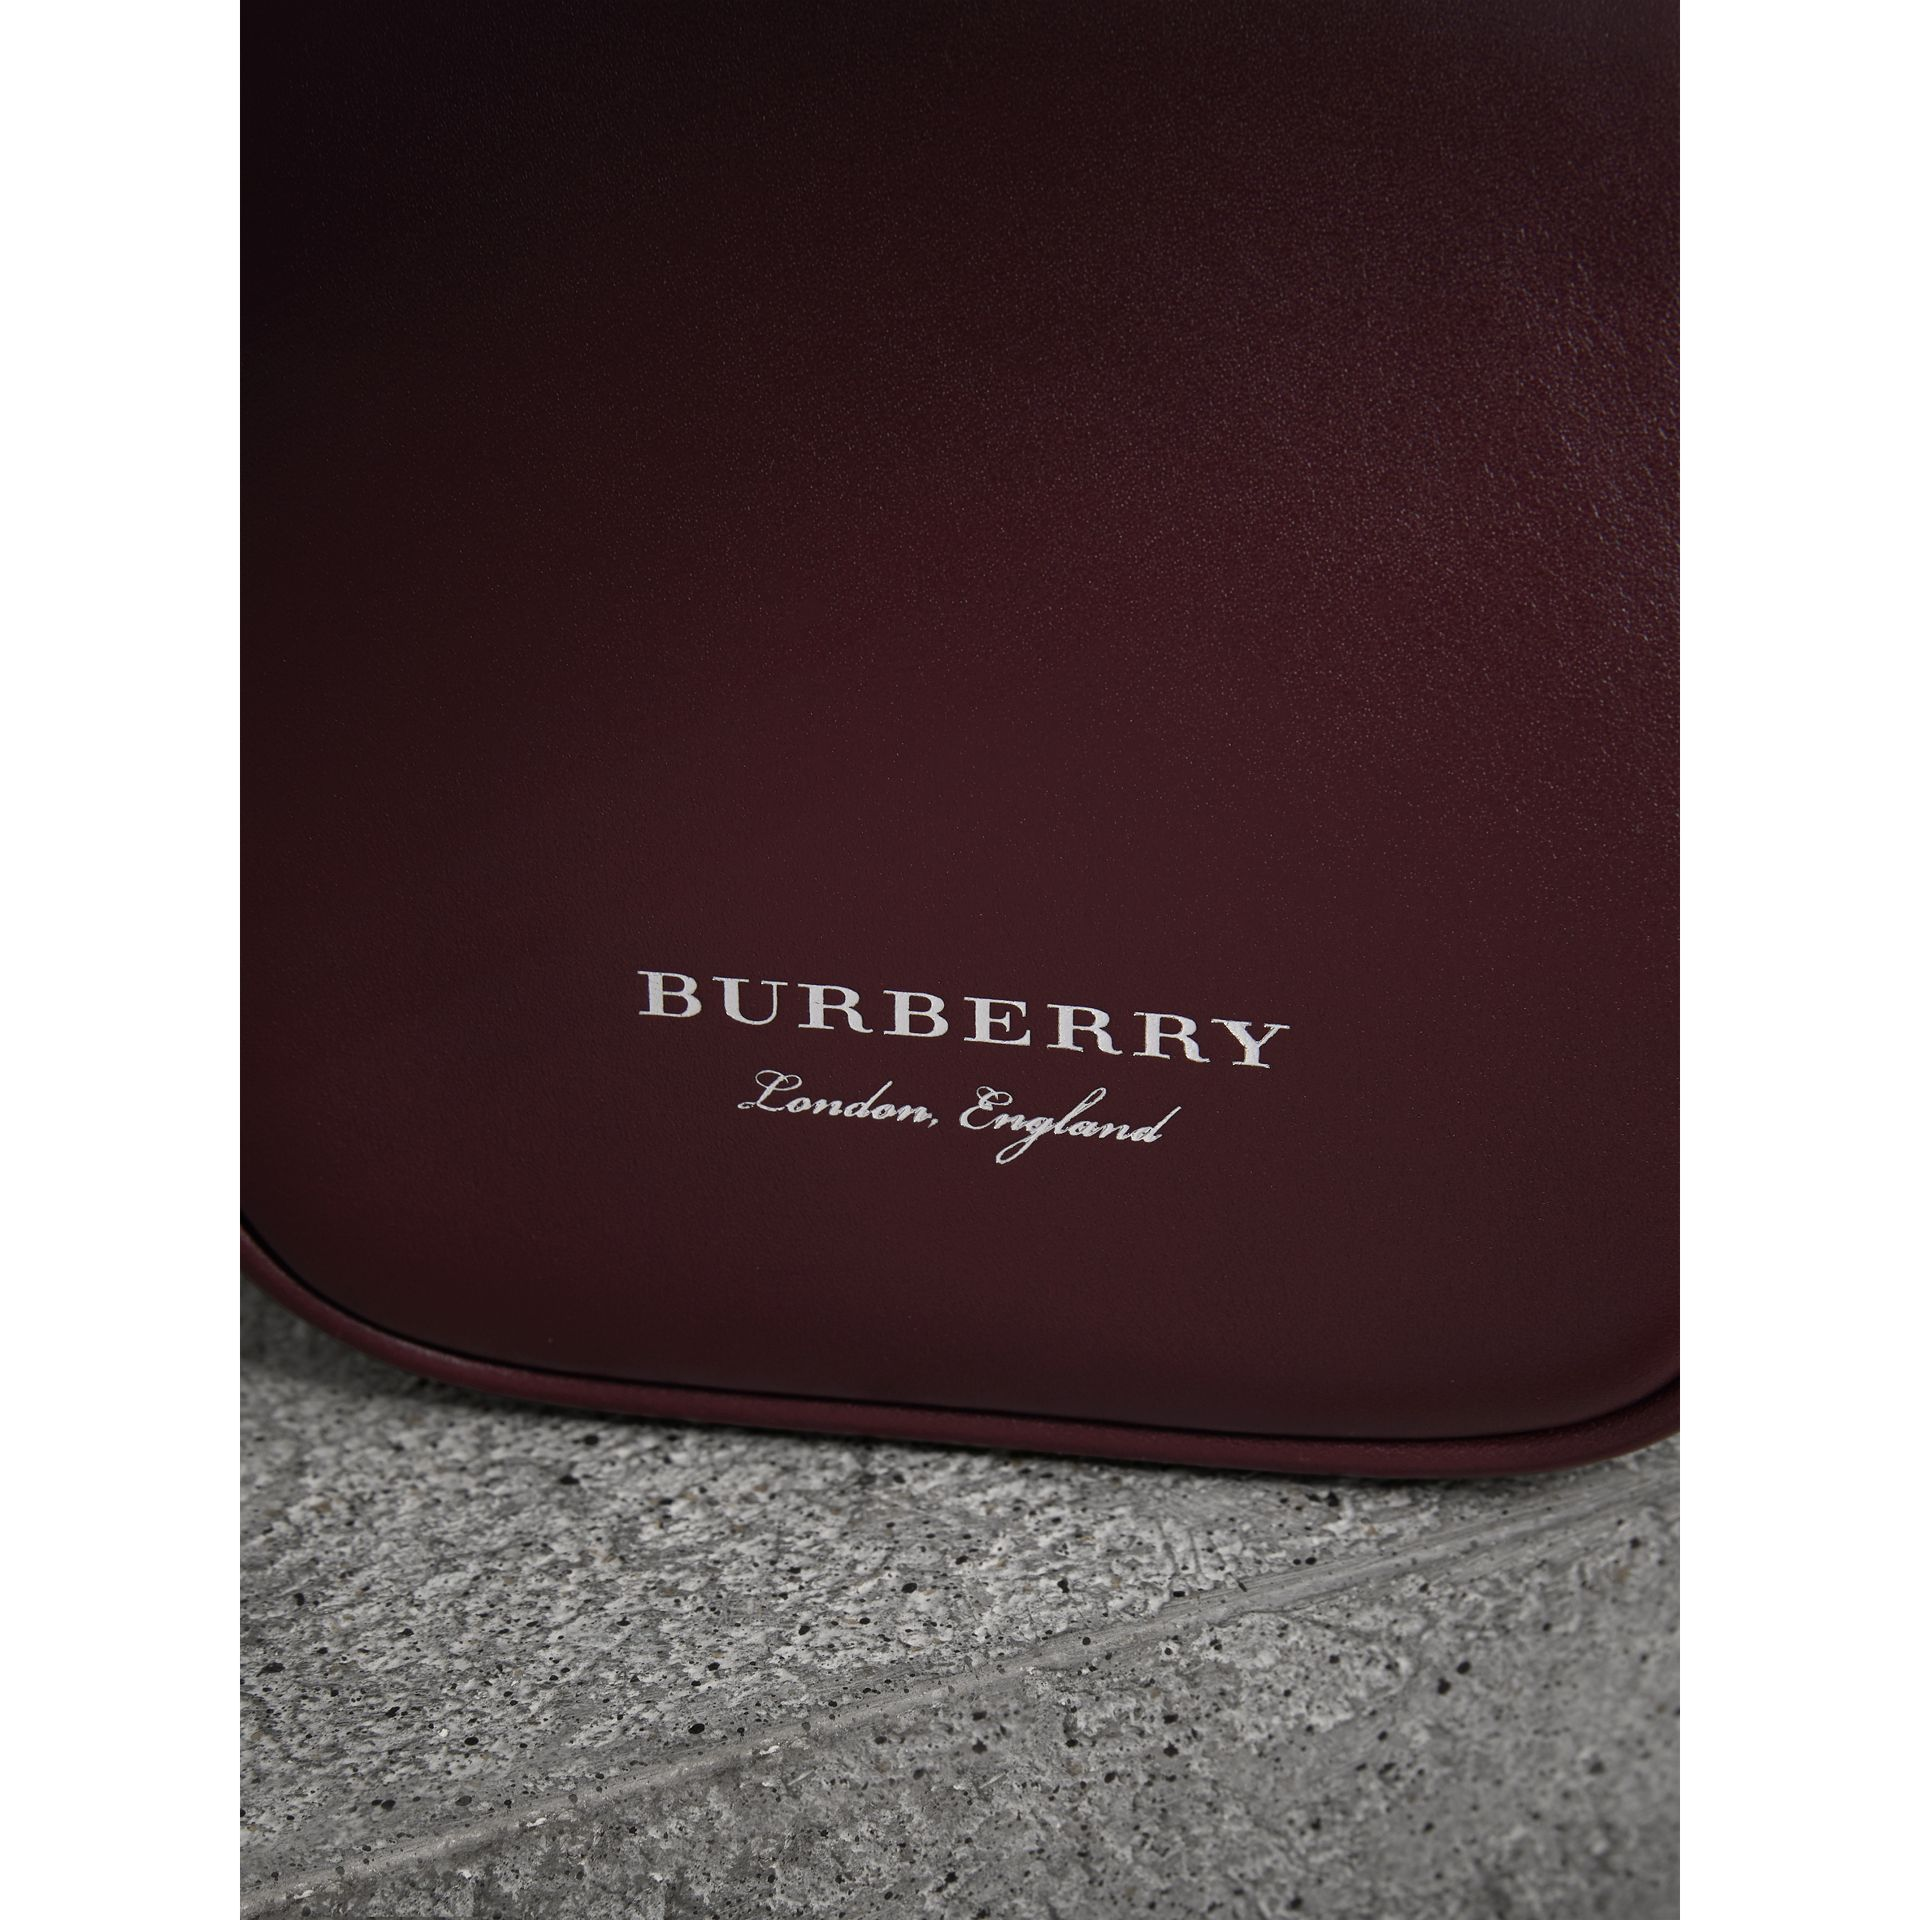 Mini Two-tone Leather Frame Bag in Burgundy - Women | Burberry United Kingdom - gallery image 1